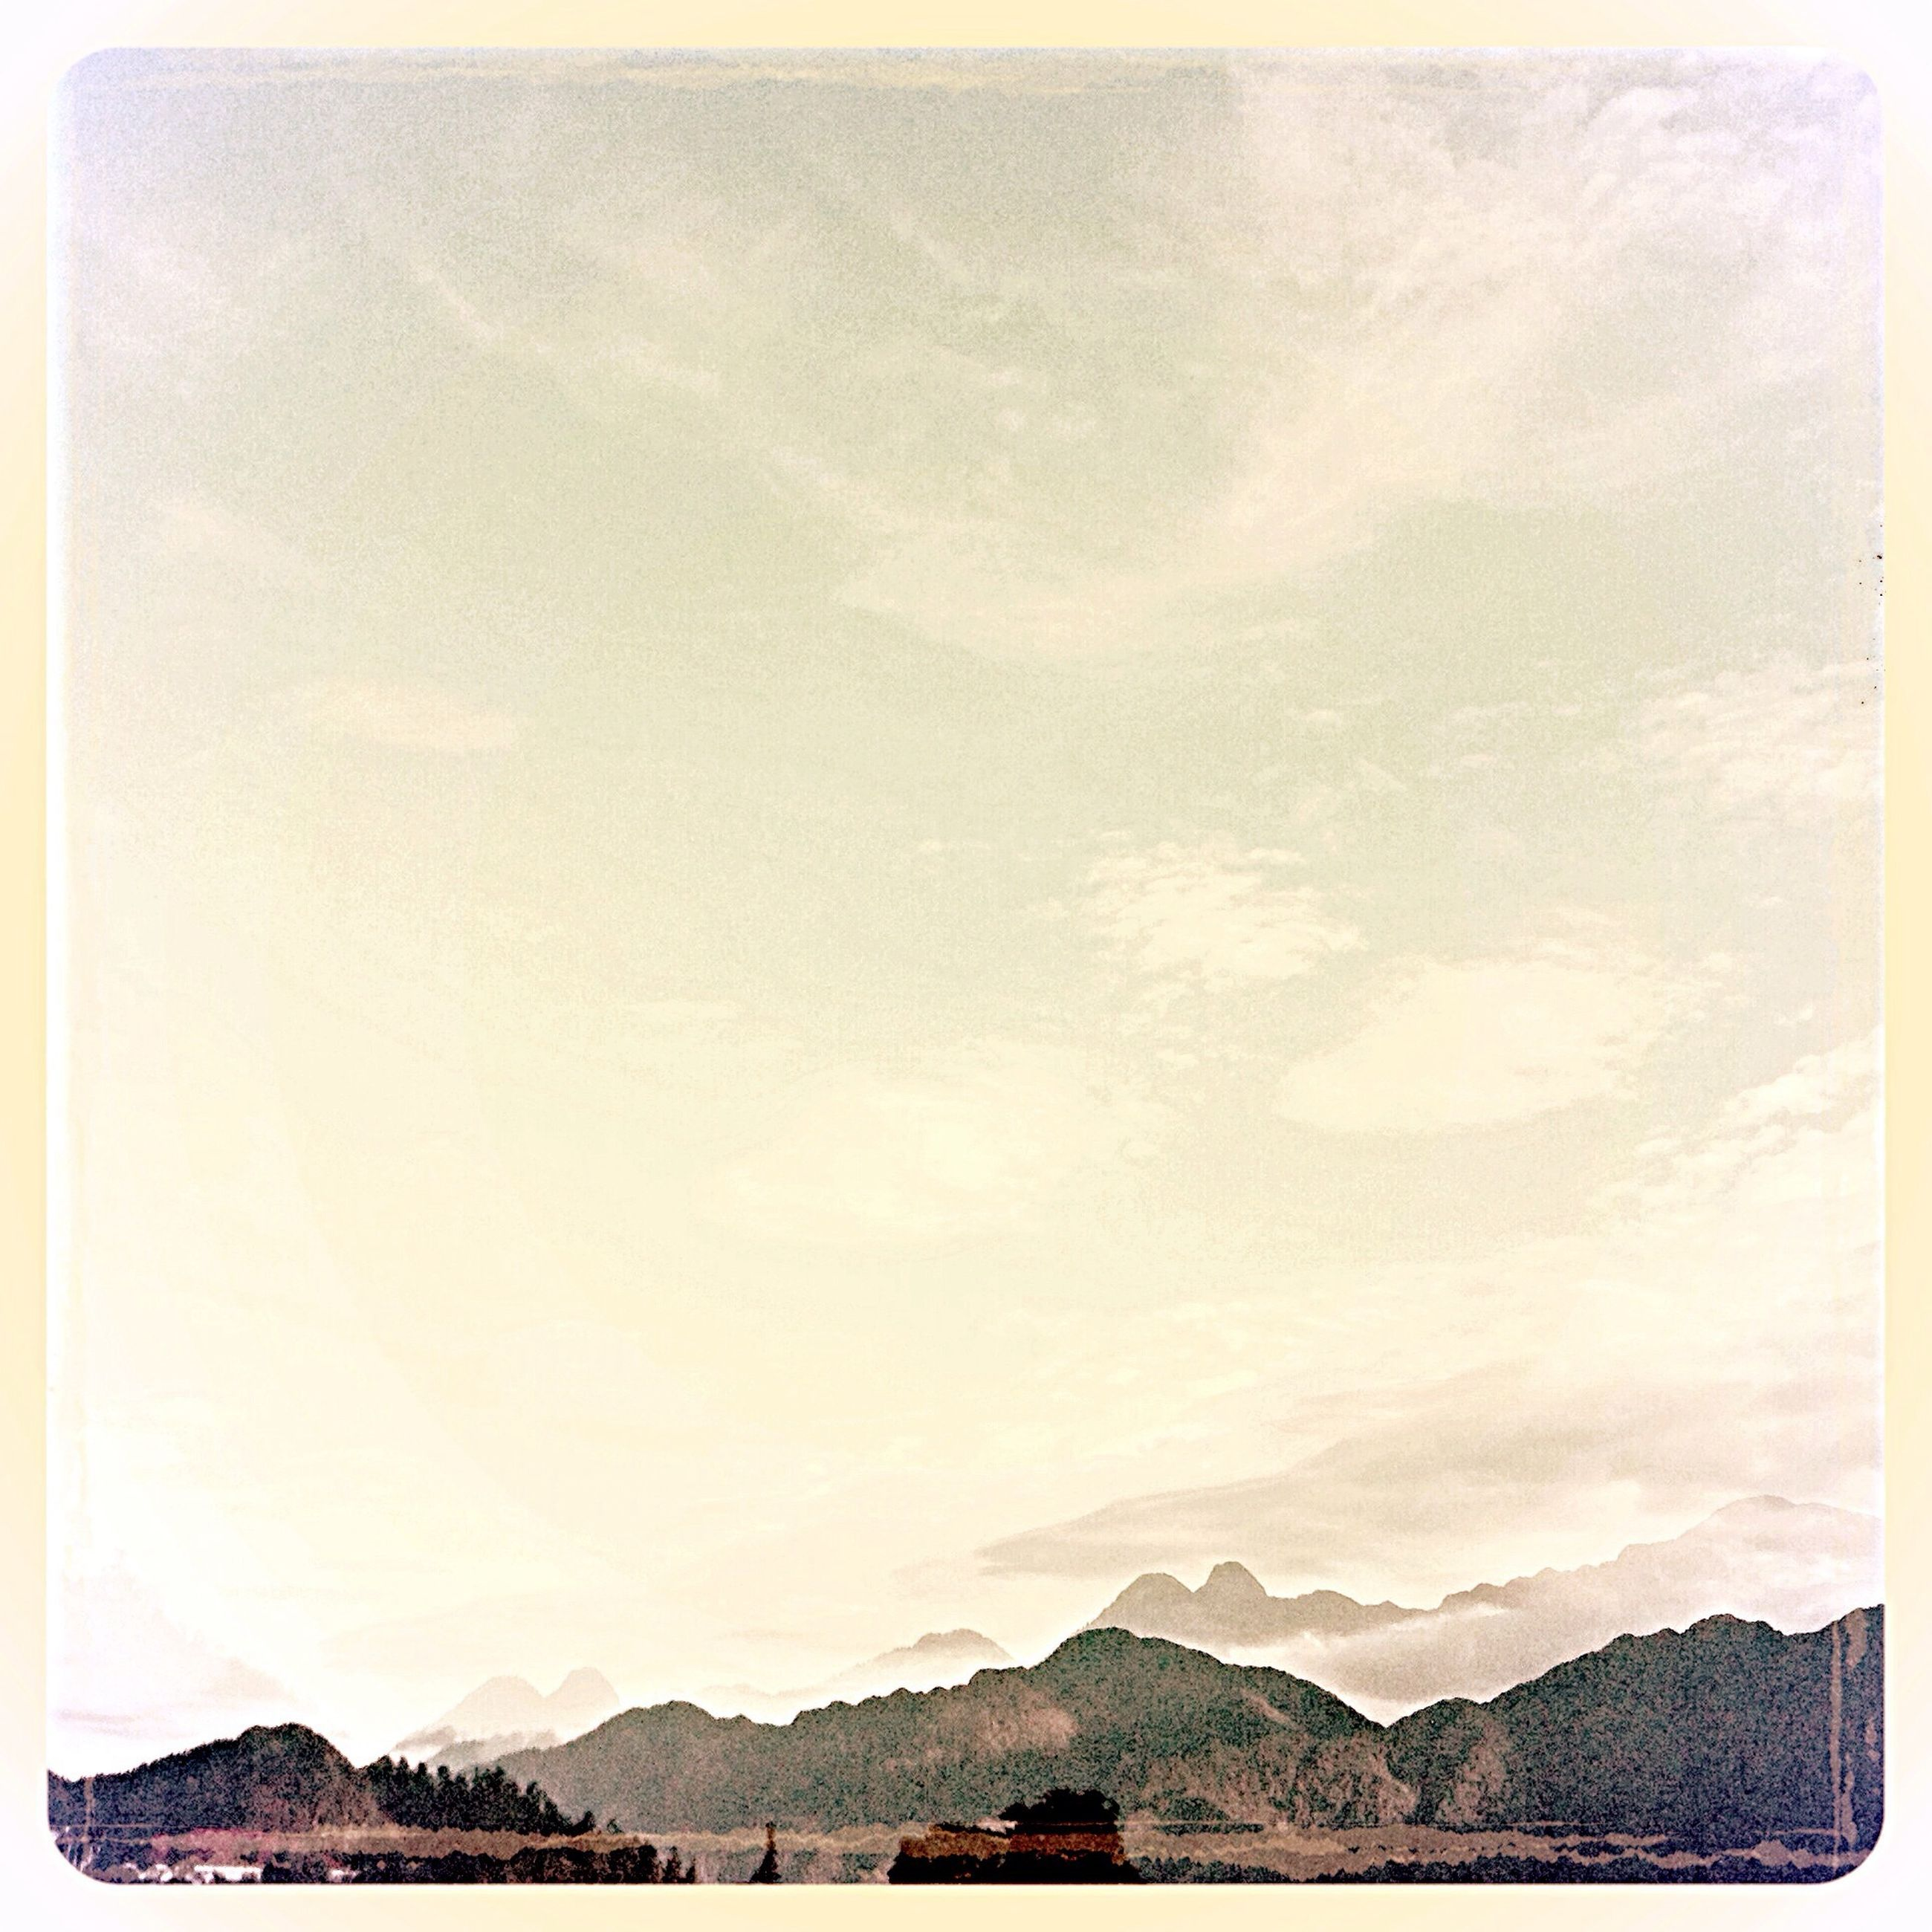 transfer print, auto post production filter, snow, winter, cold temperature, tranquility, tranquil scene, weather, beauty in nature, scenics, nature, season, white color, landscape, mountain, high angle view, covering, panoramic, outdoors, day